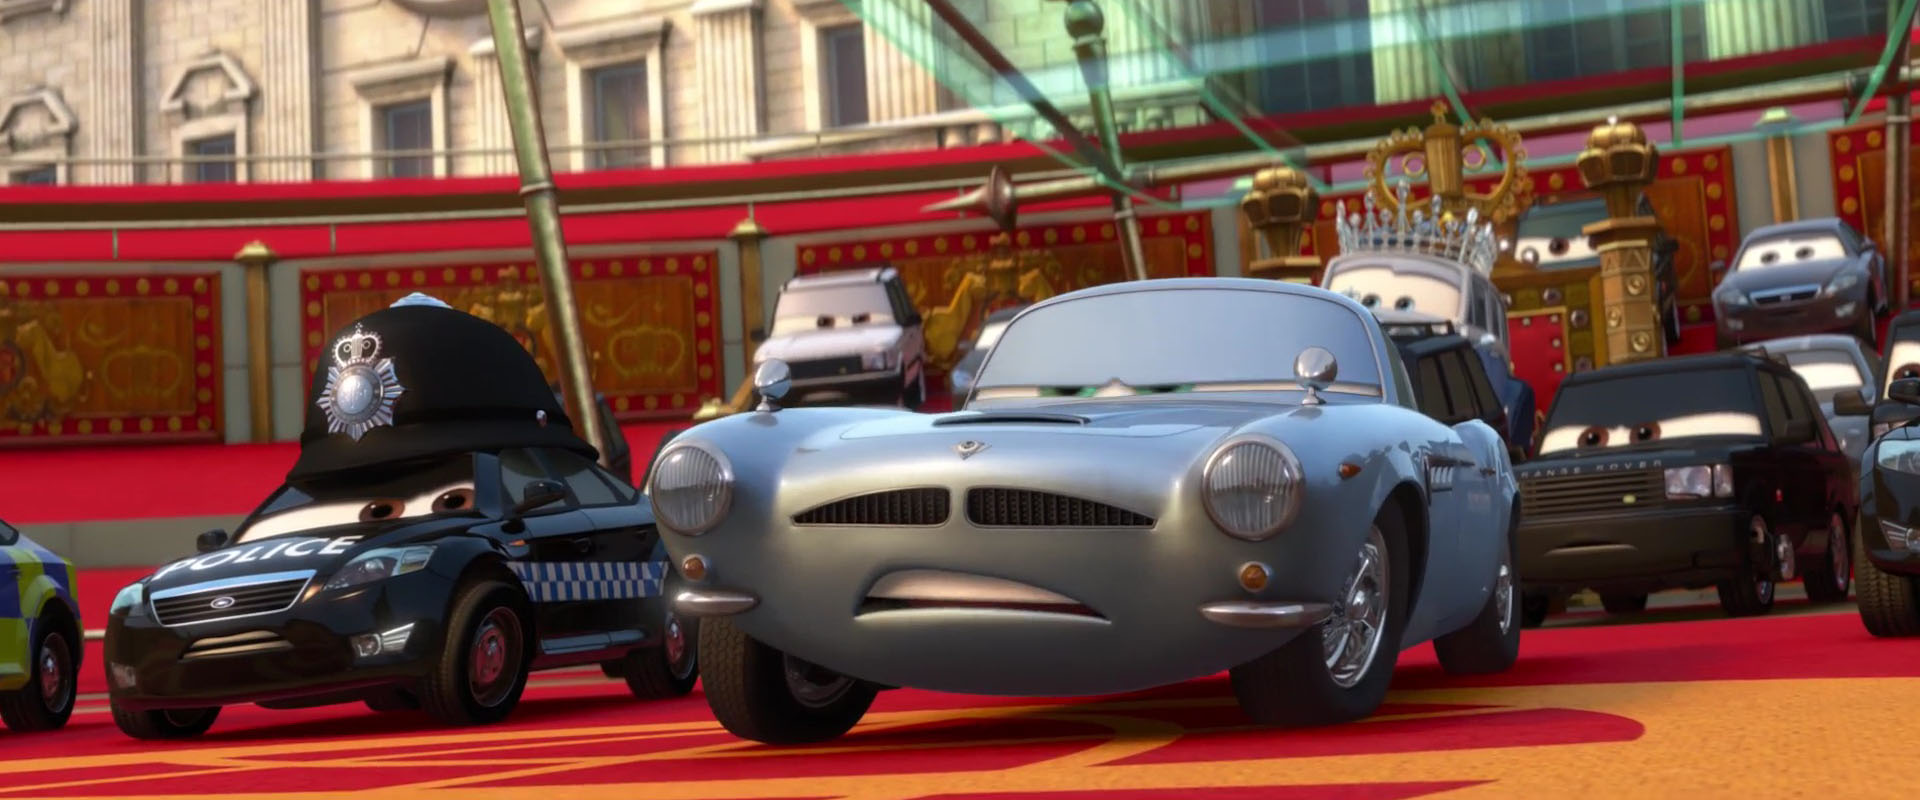 doug-speedcheck-personnage-cars-2-01